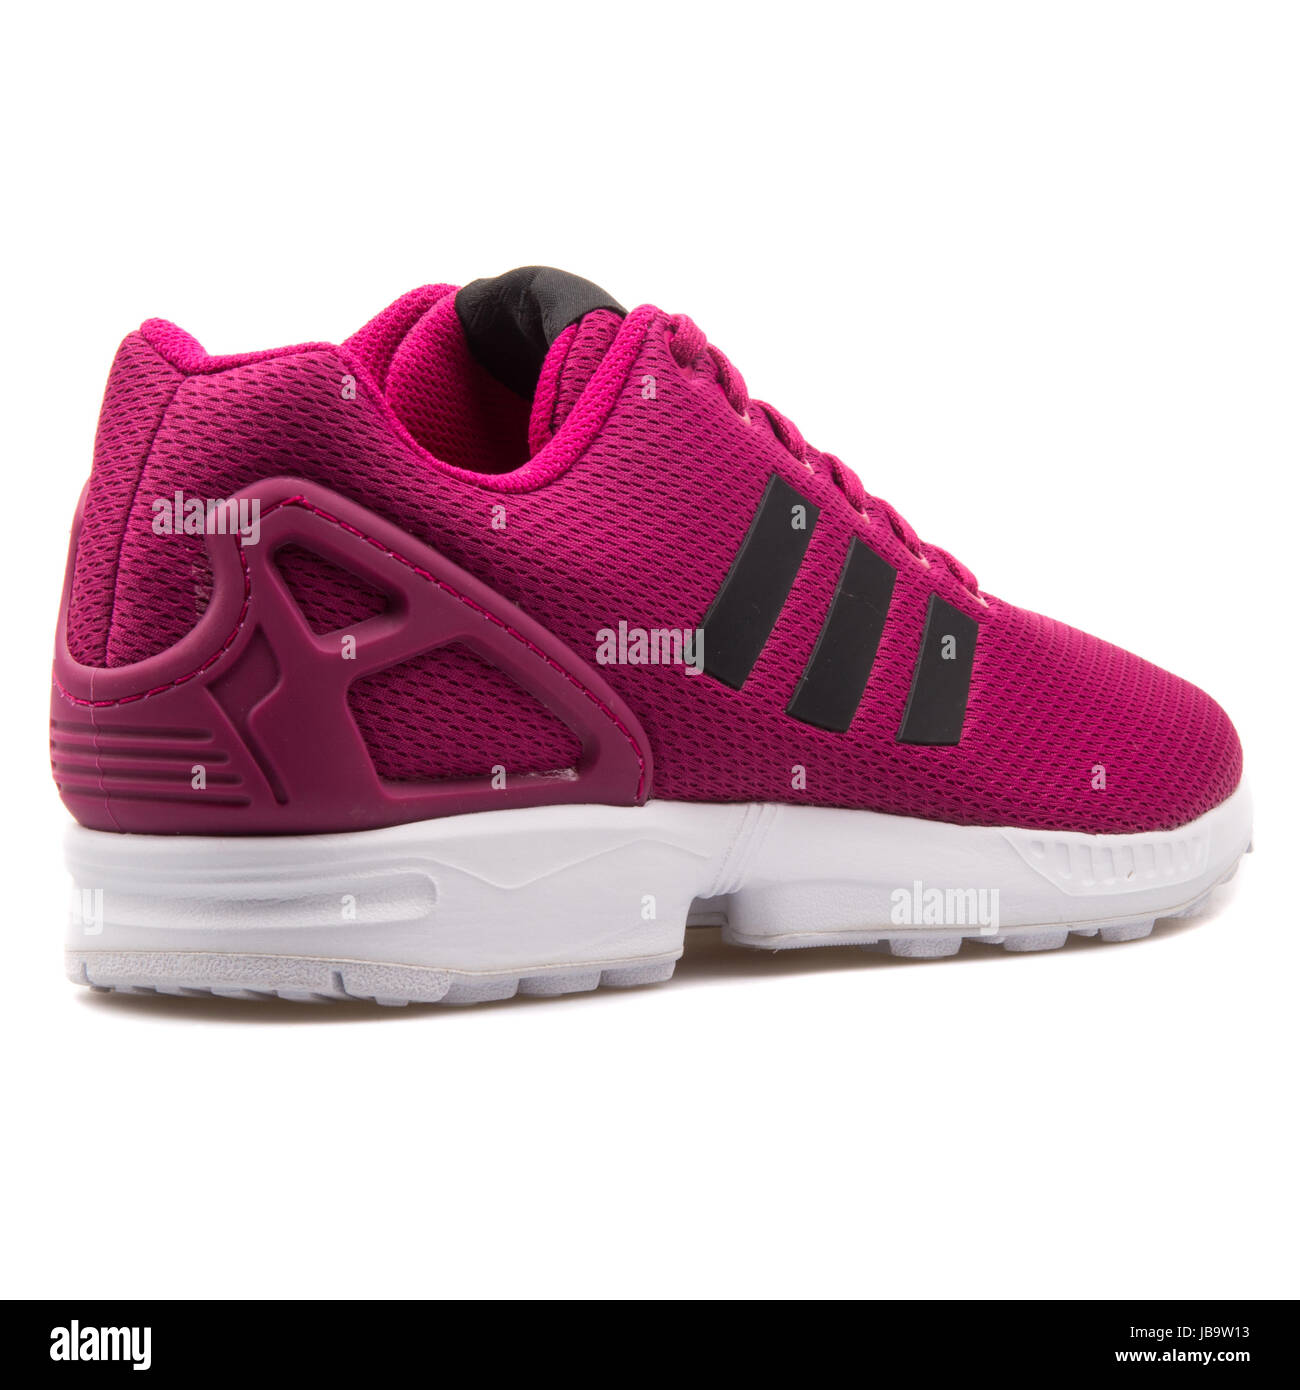 3bd366dc8fda Adidas ZX Flux Pink Men s Running Shoes - AF6343 Stock Photo ...